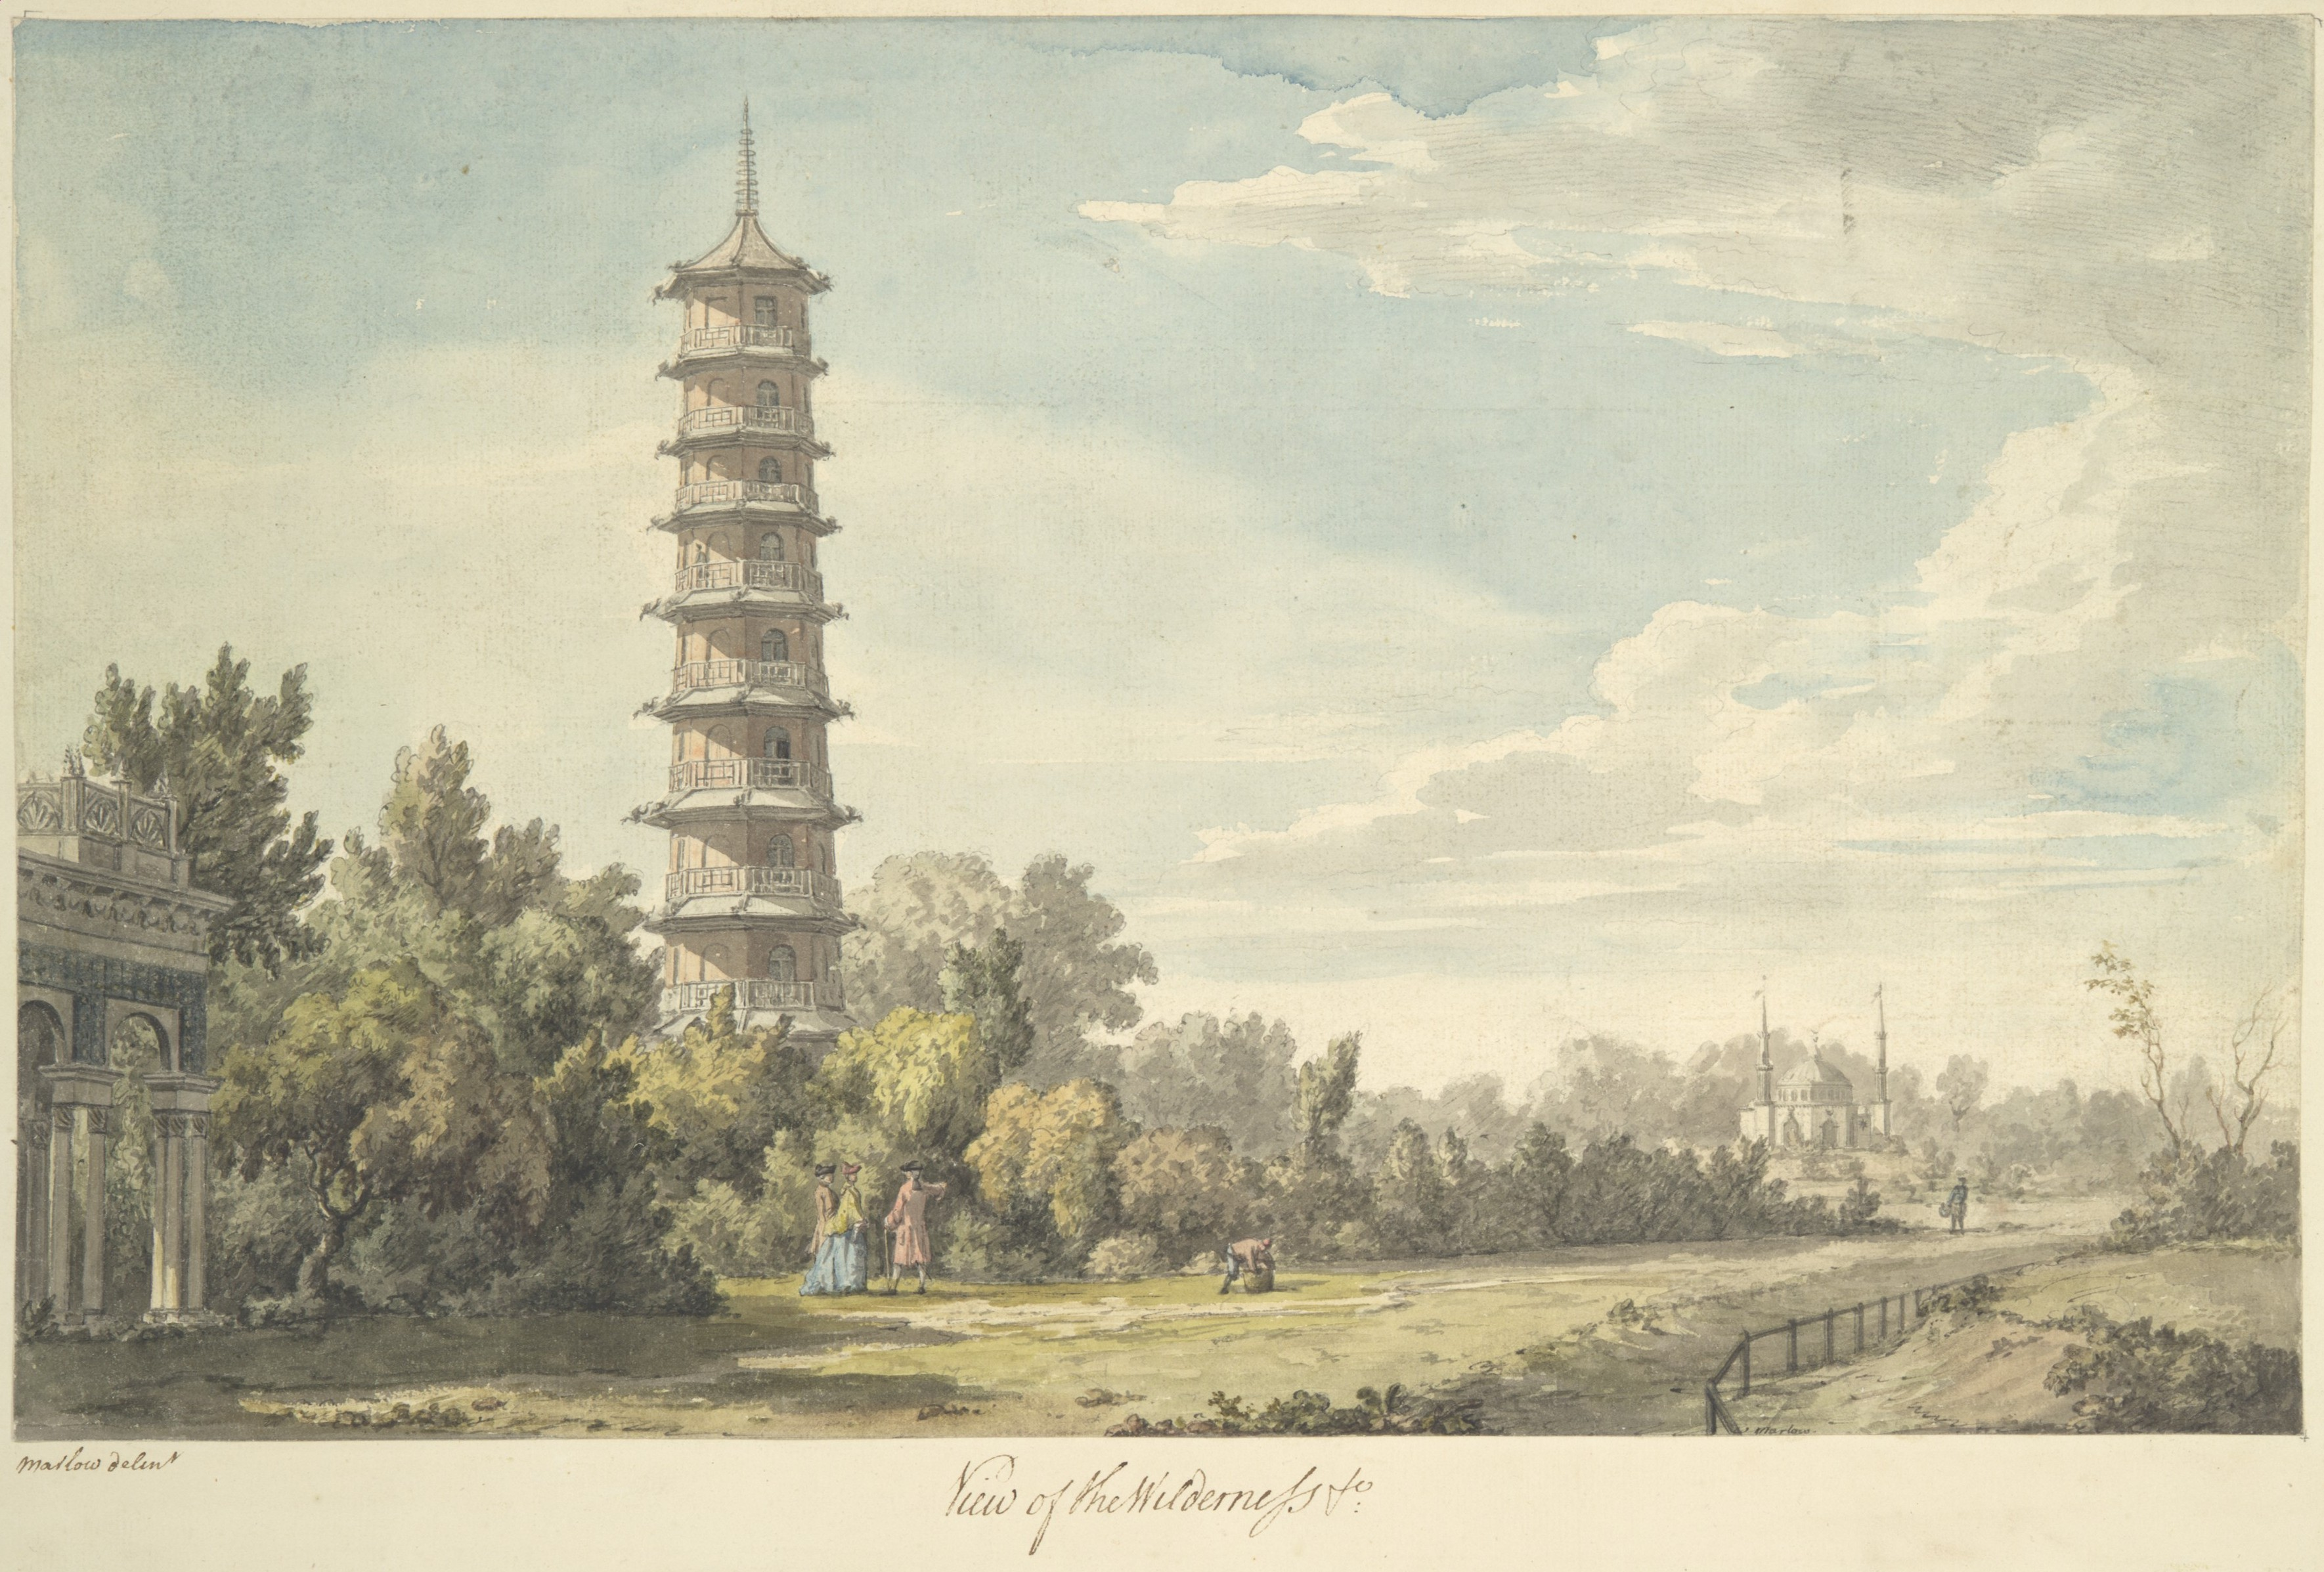 William Chambers, A Dissertation on Oriental Gardening, 1772